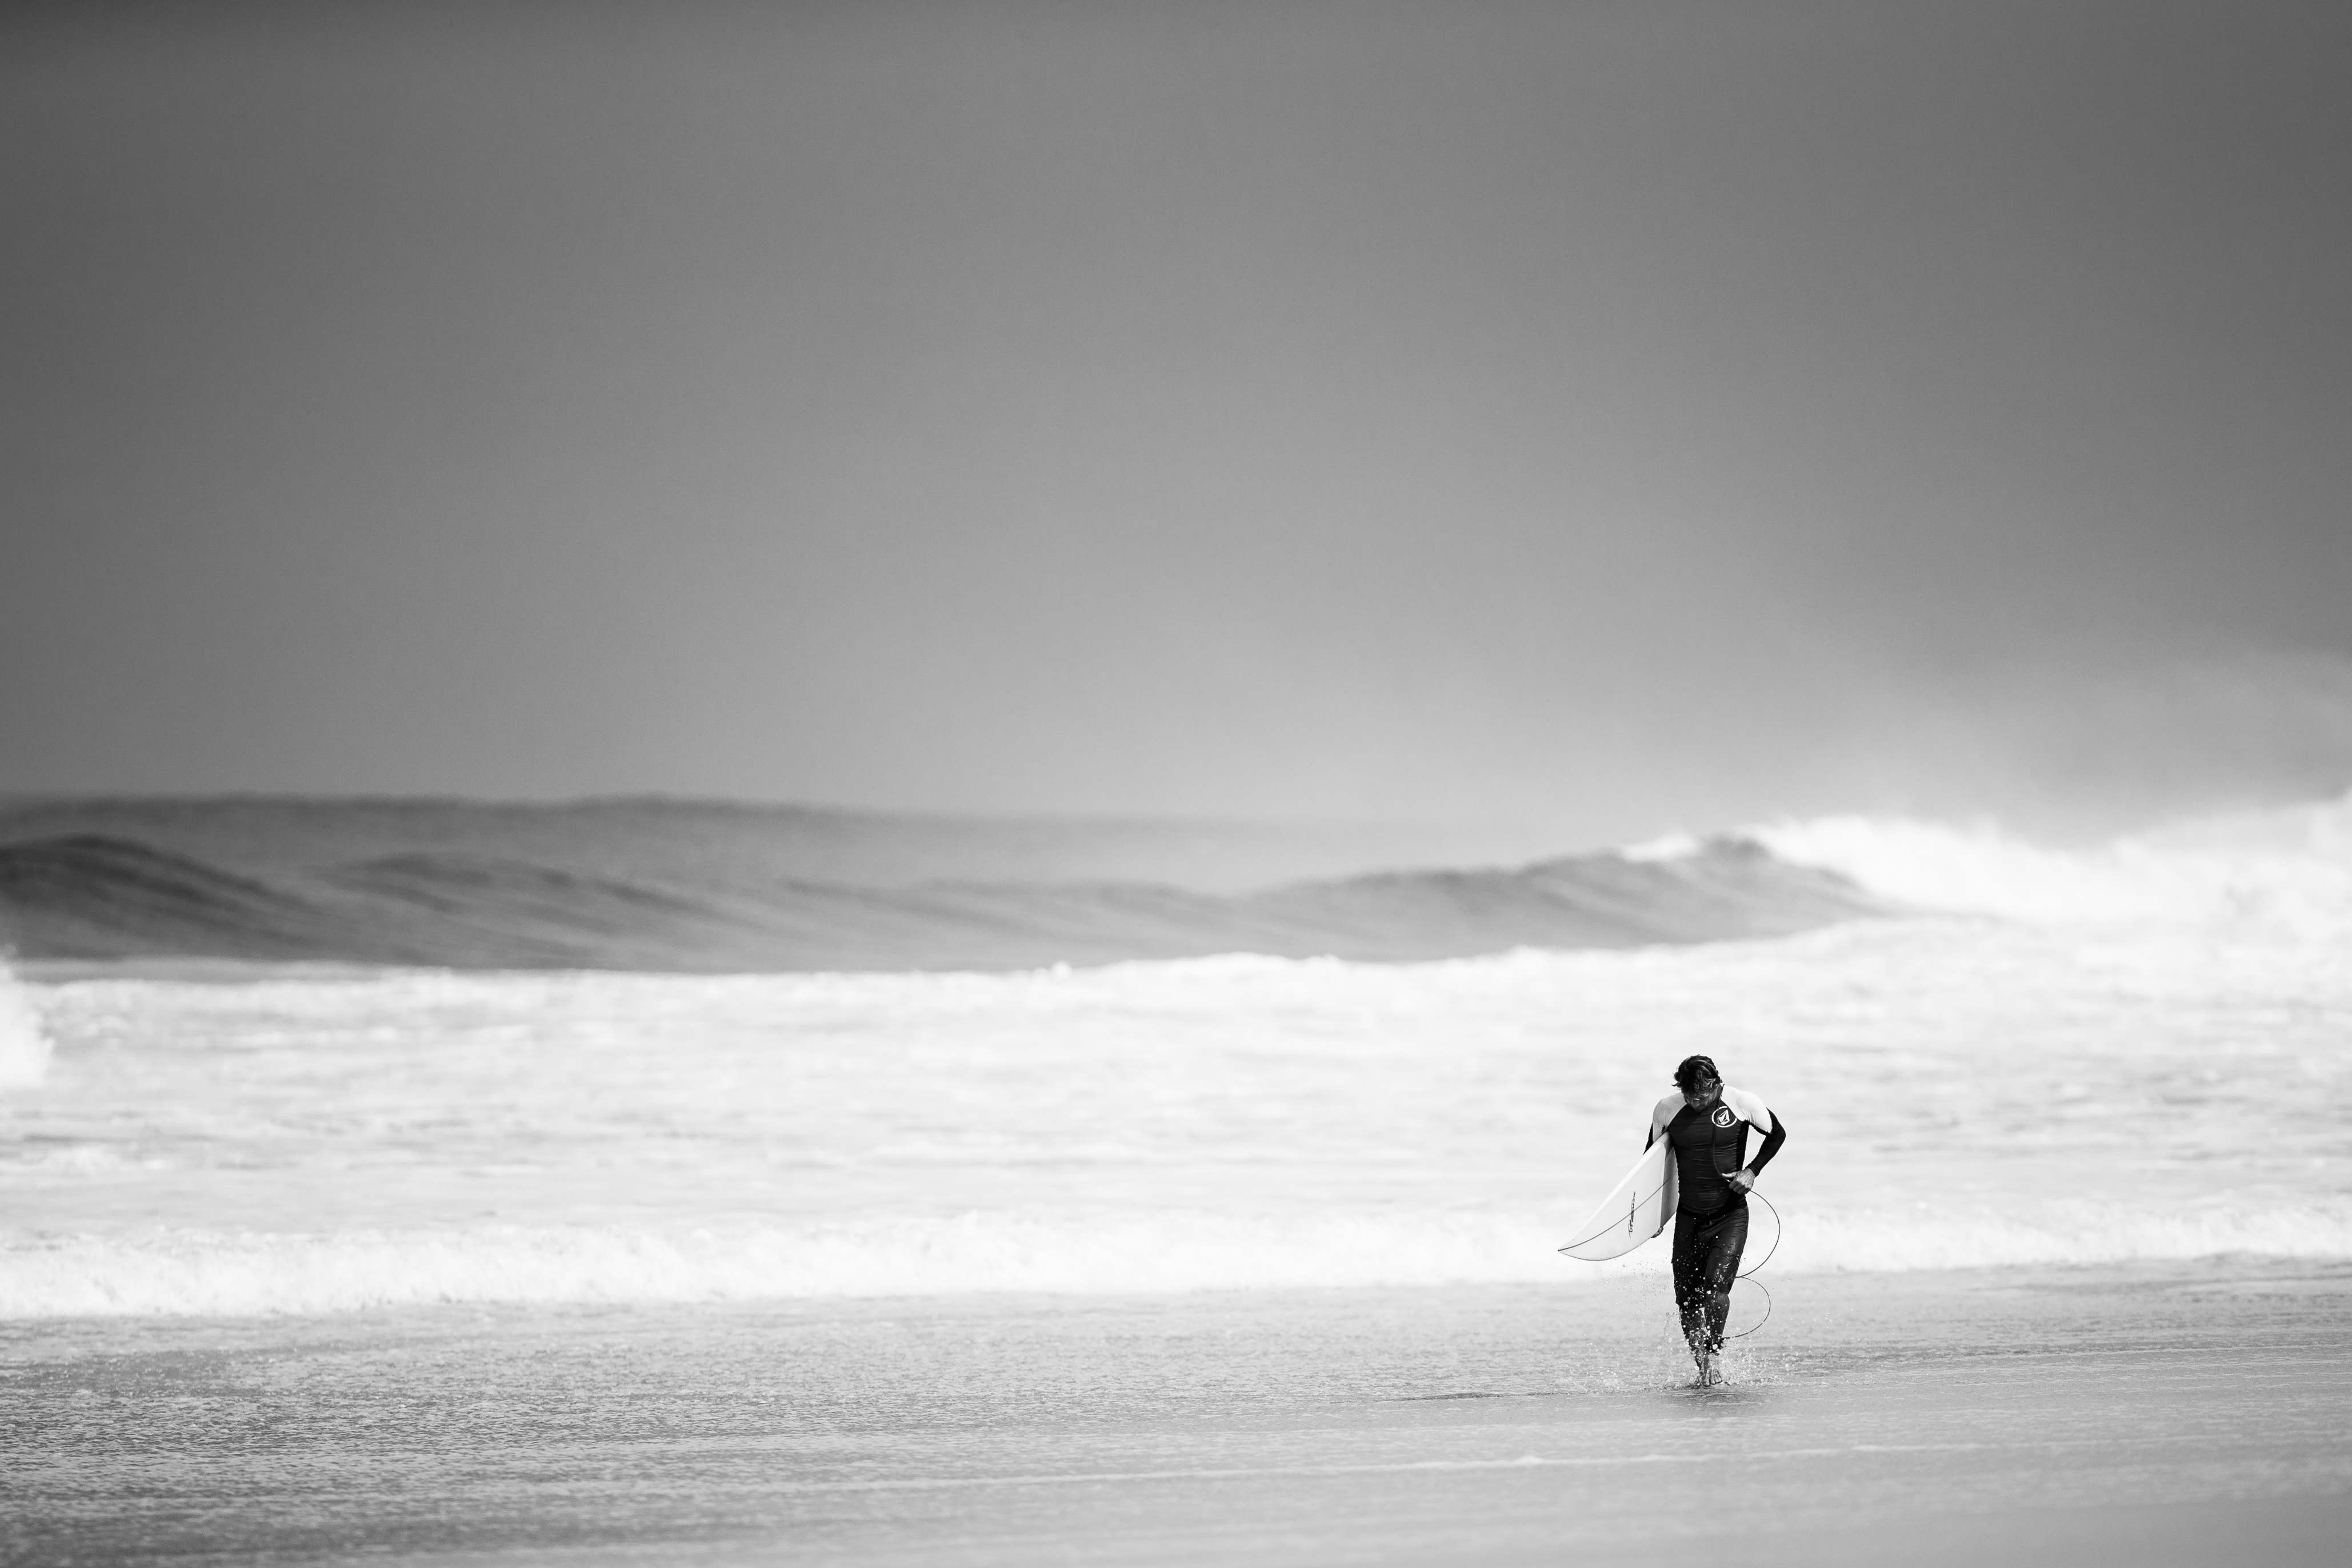 Little Girl Wallpaper Free Download Picalls Com Surfer On The Beach By Andreas Winter